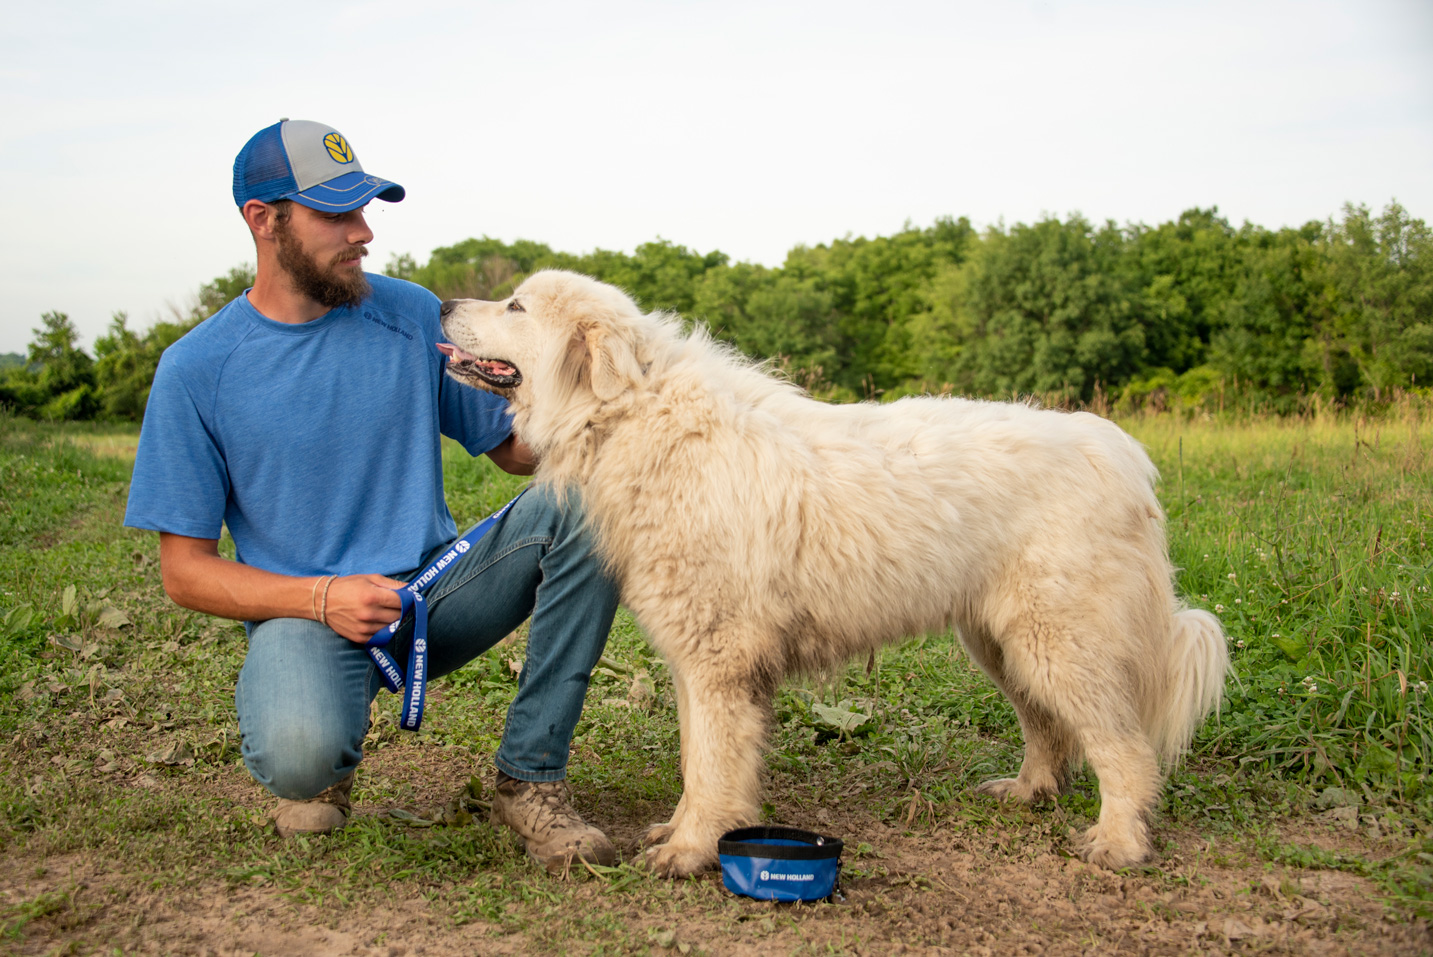 Man and Dog New Holland Apparel